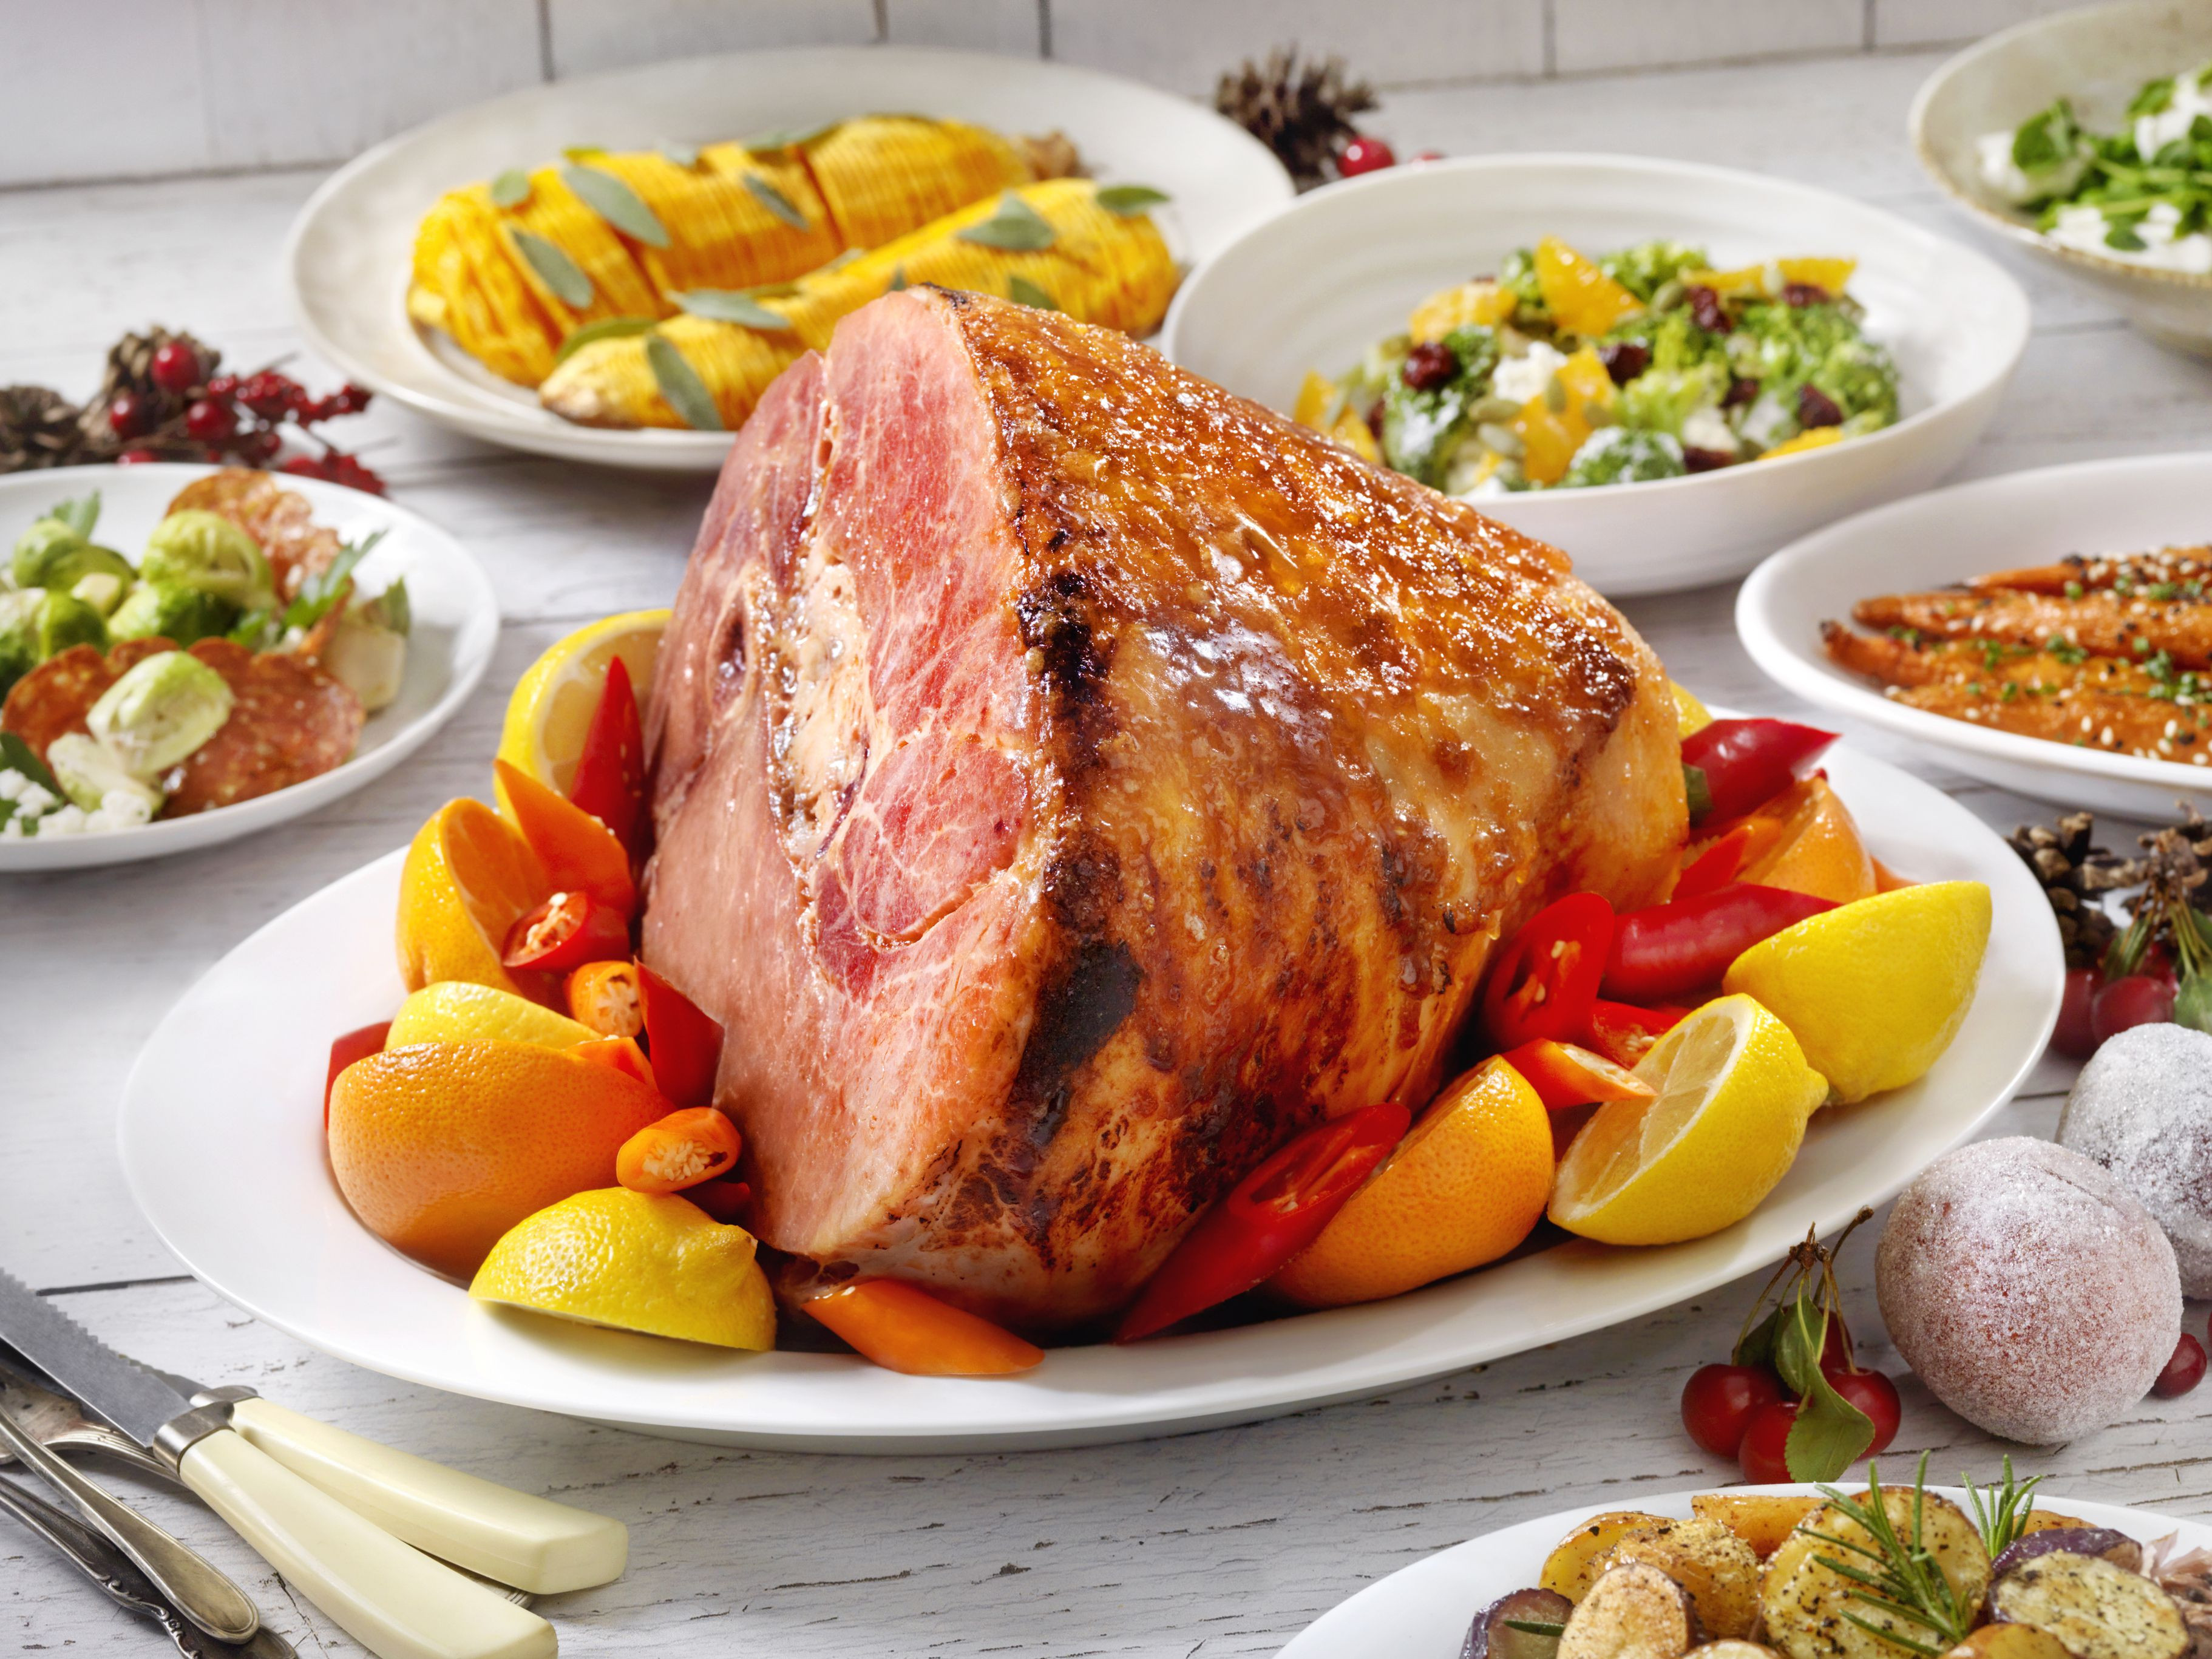 Why Do We Eat Ham At Easter  Why Ham For Easter Dinner